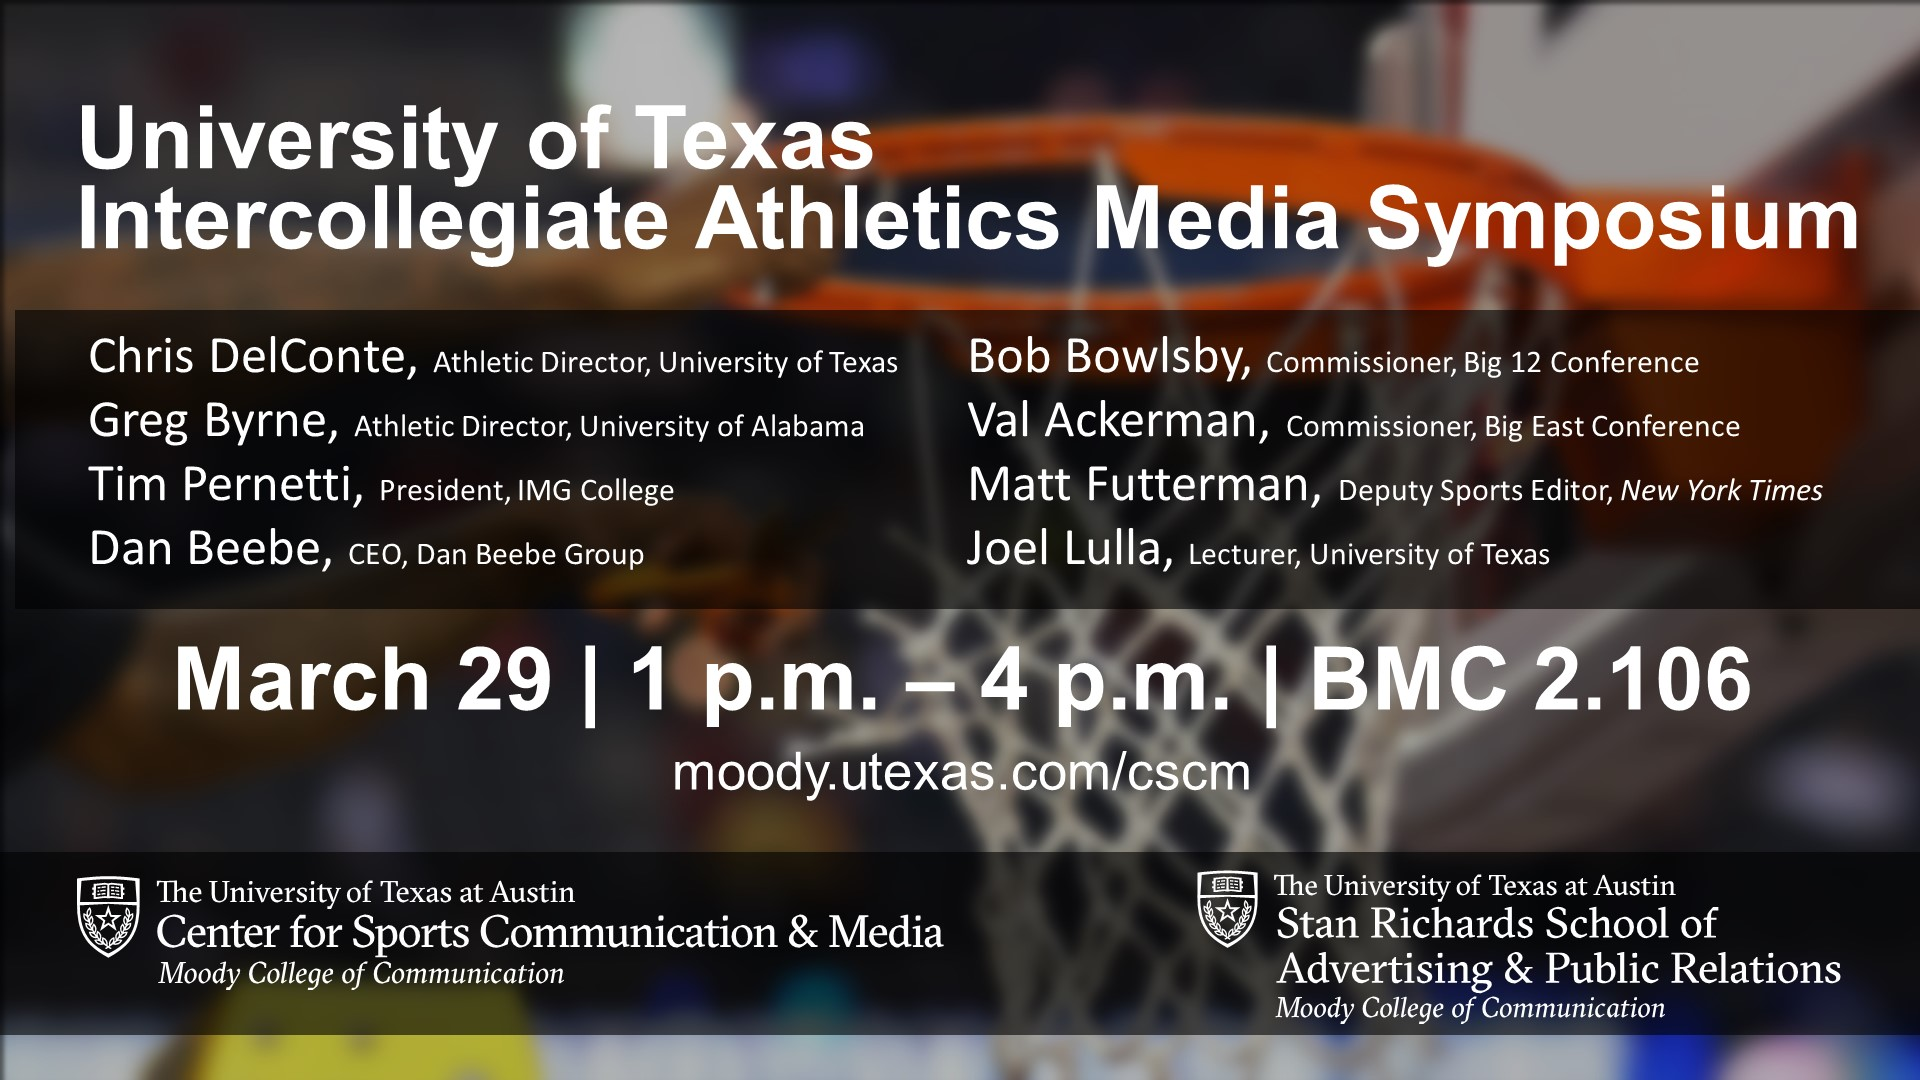 intercollegiate media symposium